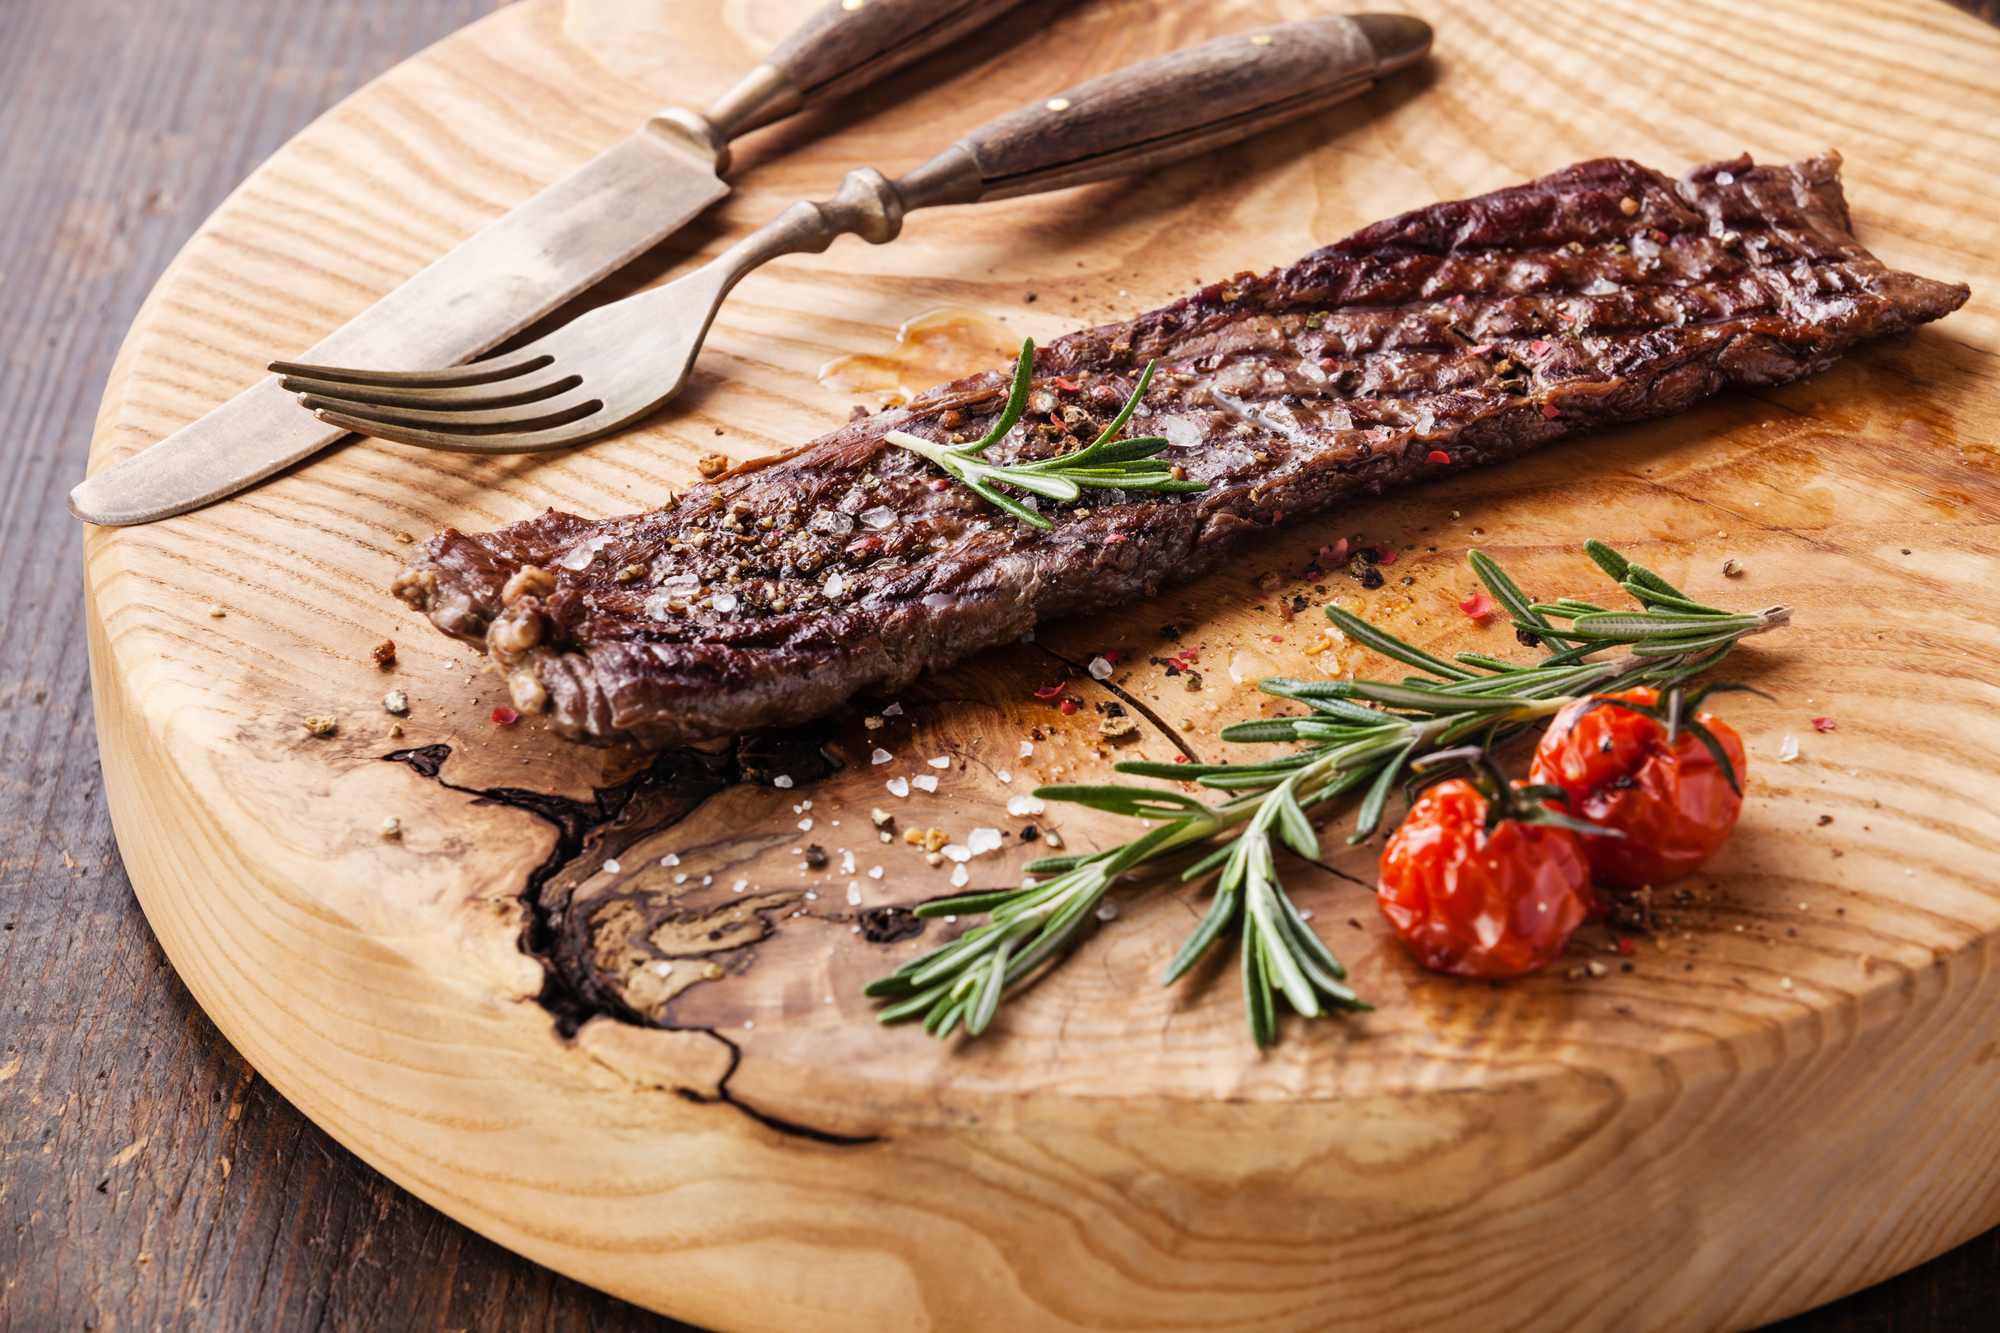 Steak Machete with rosemary, salt and pepper on wooden background